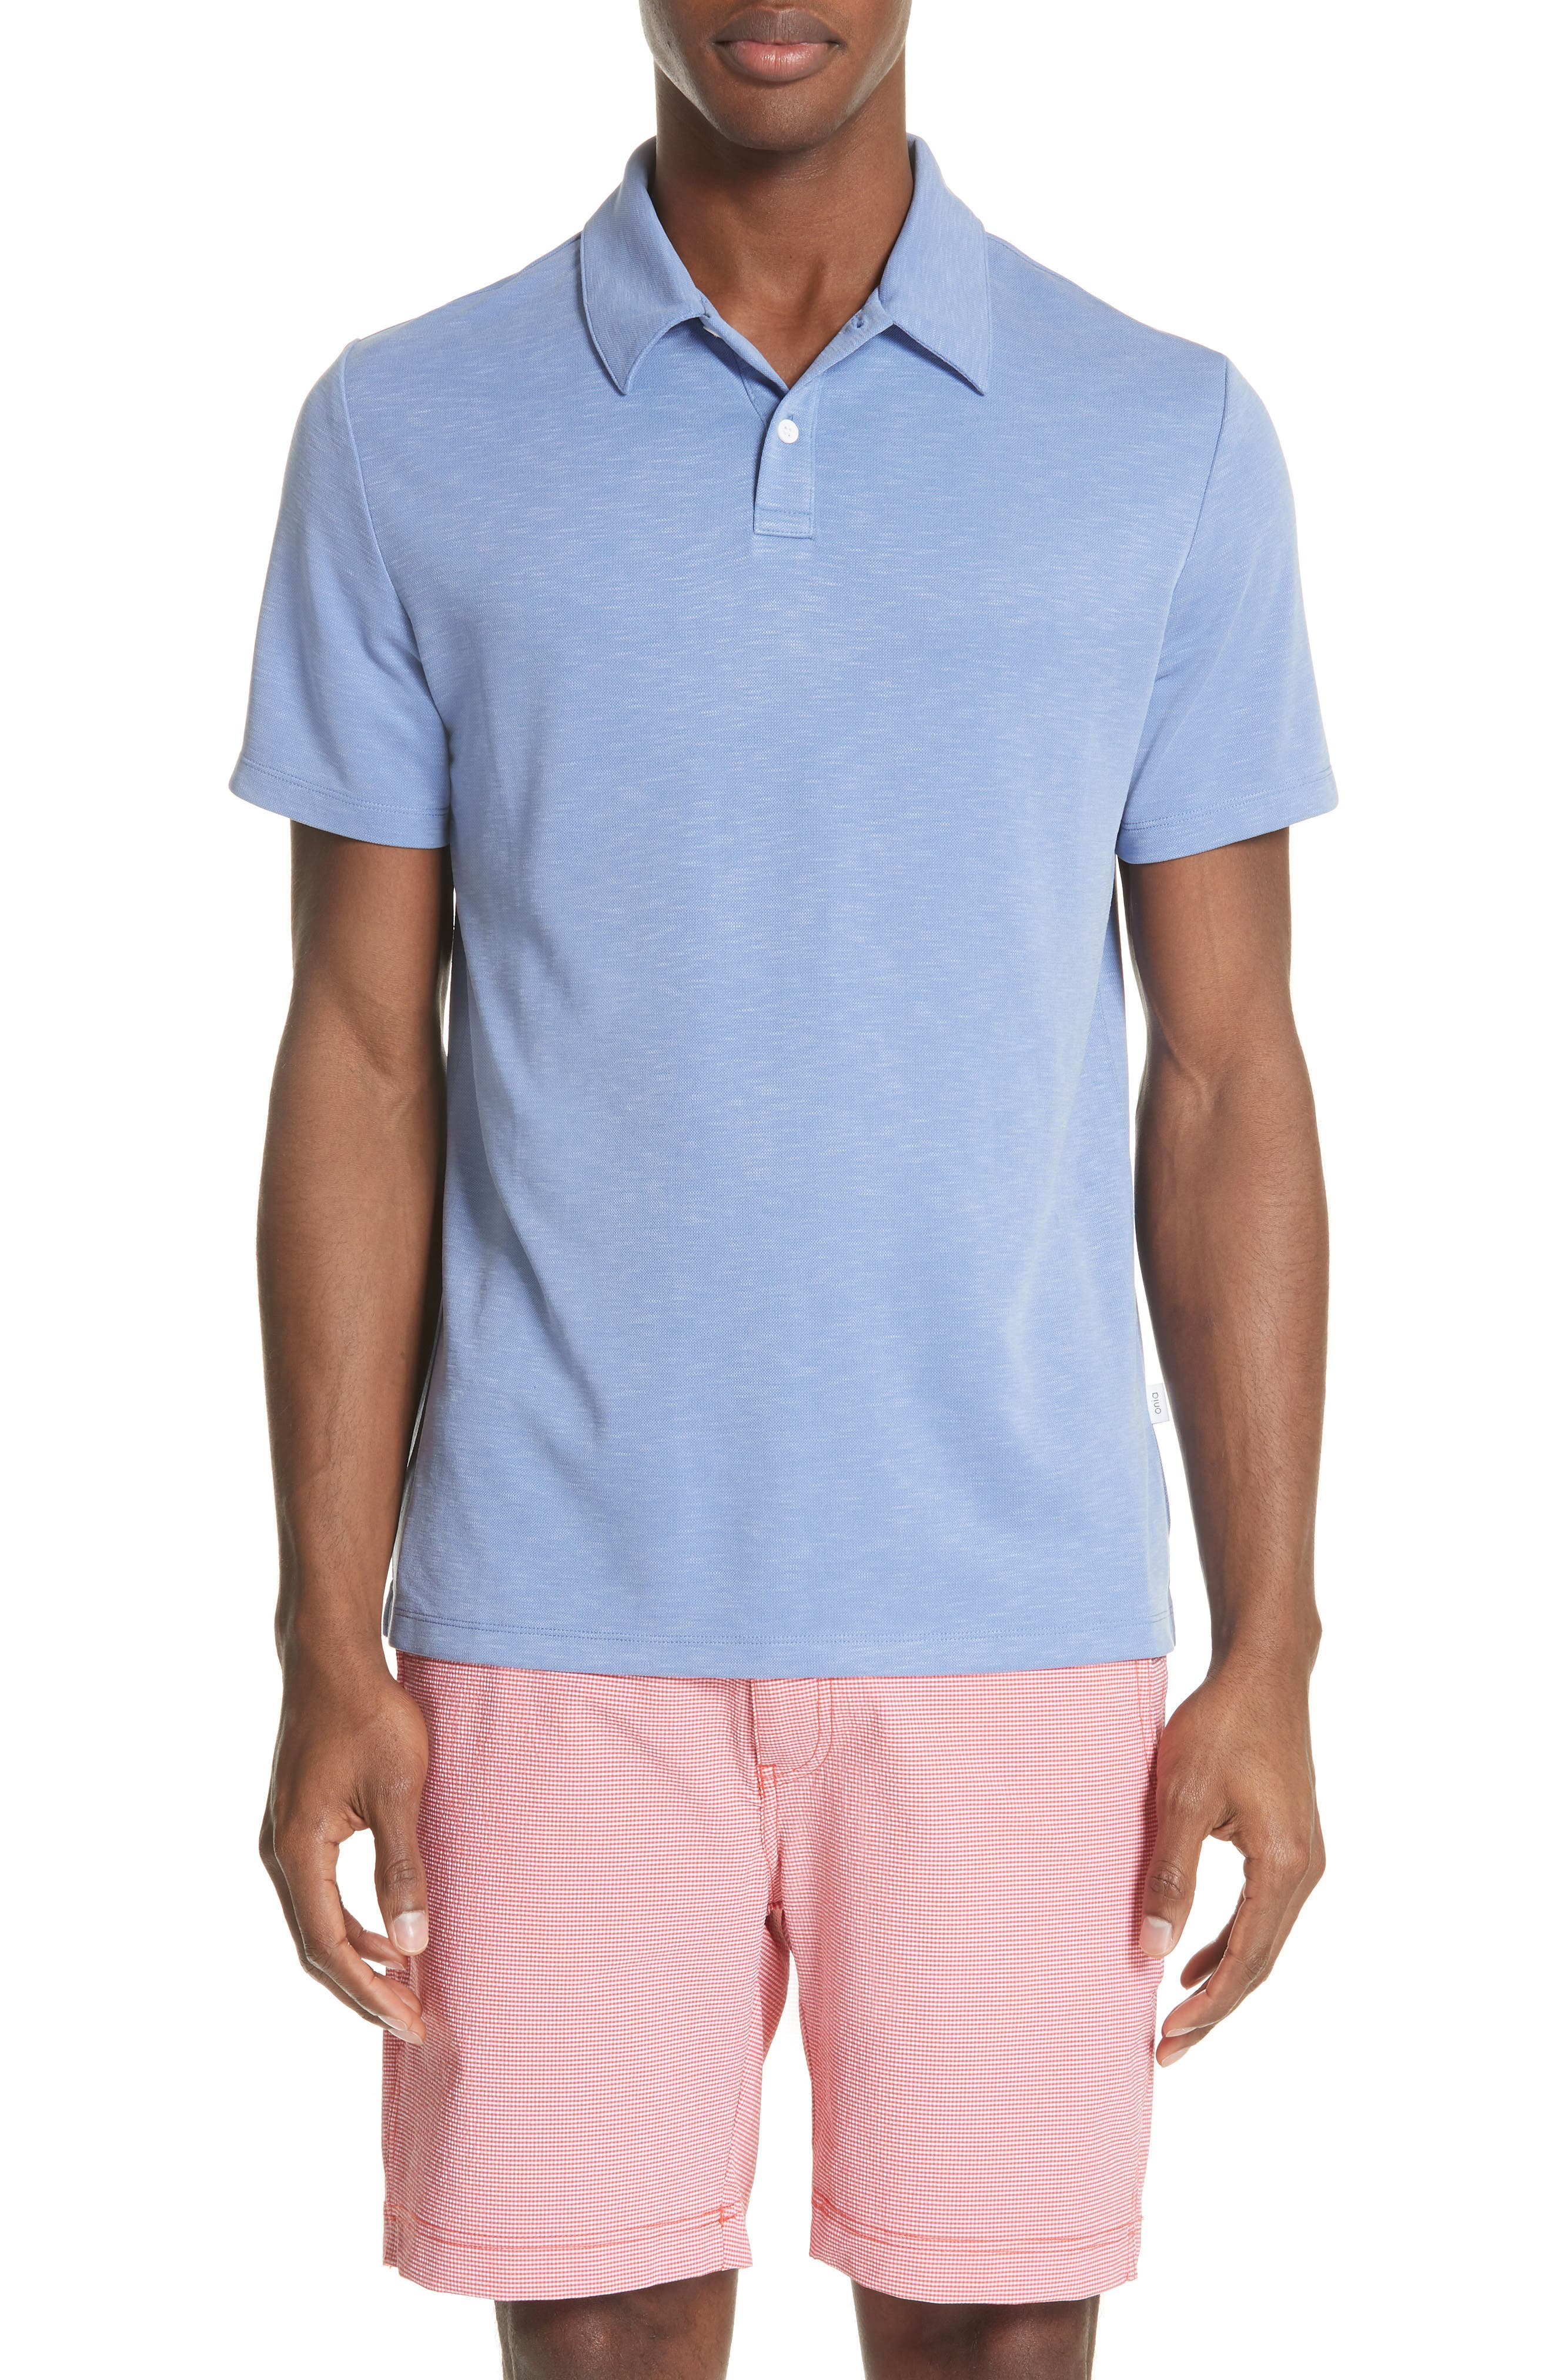 Alternate Image 1 Selected - ONIA Alec Jersey Polo